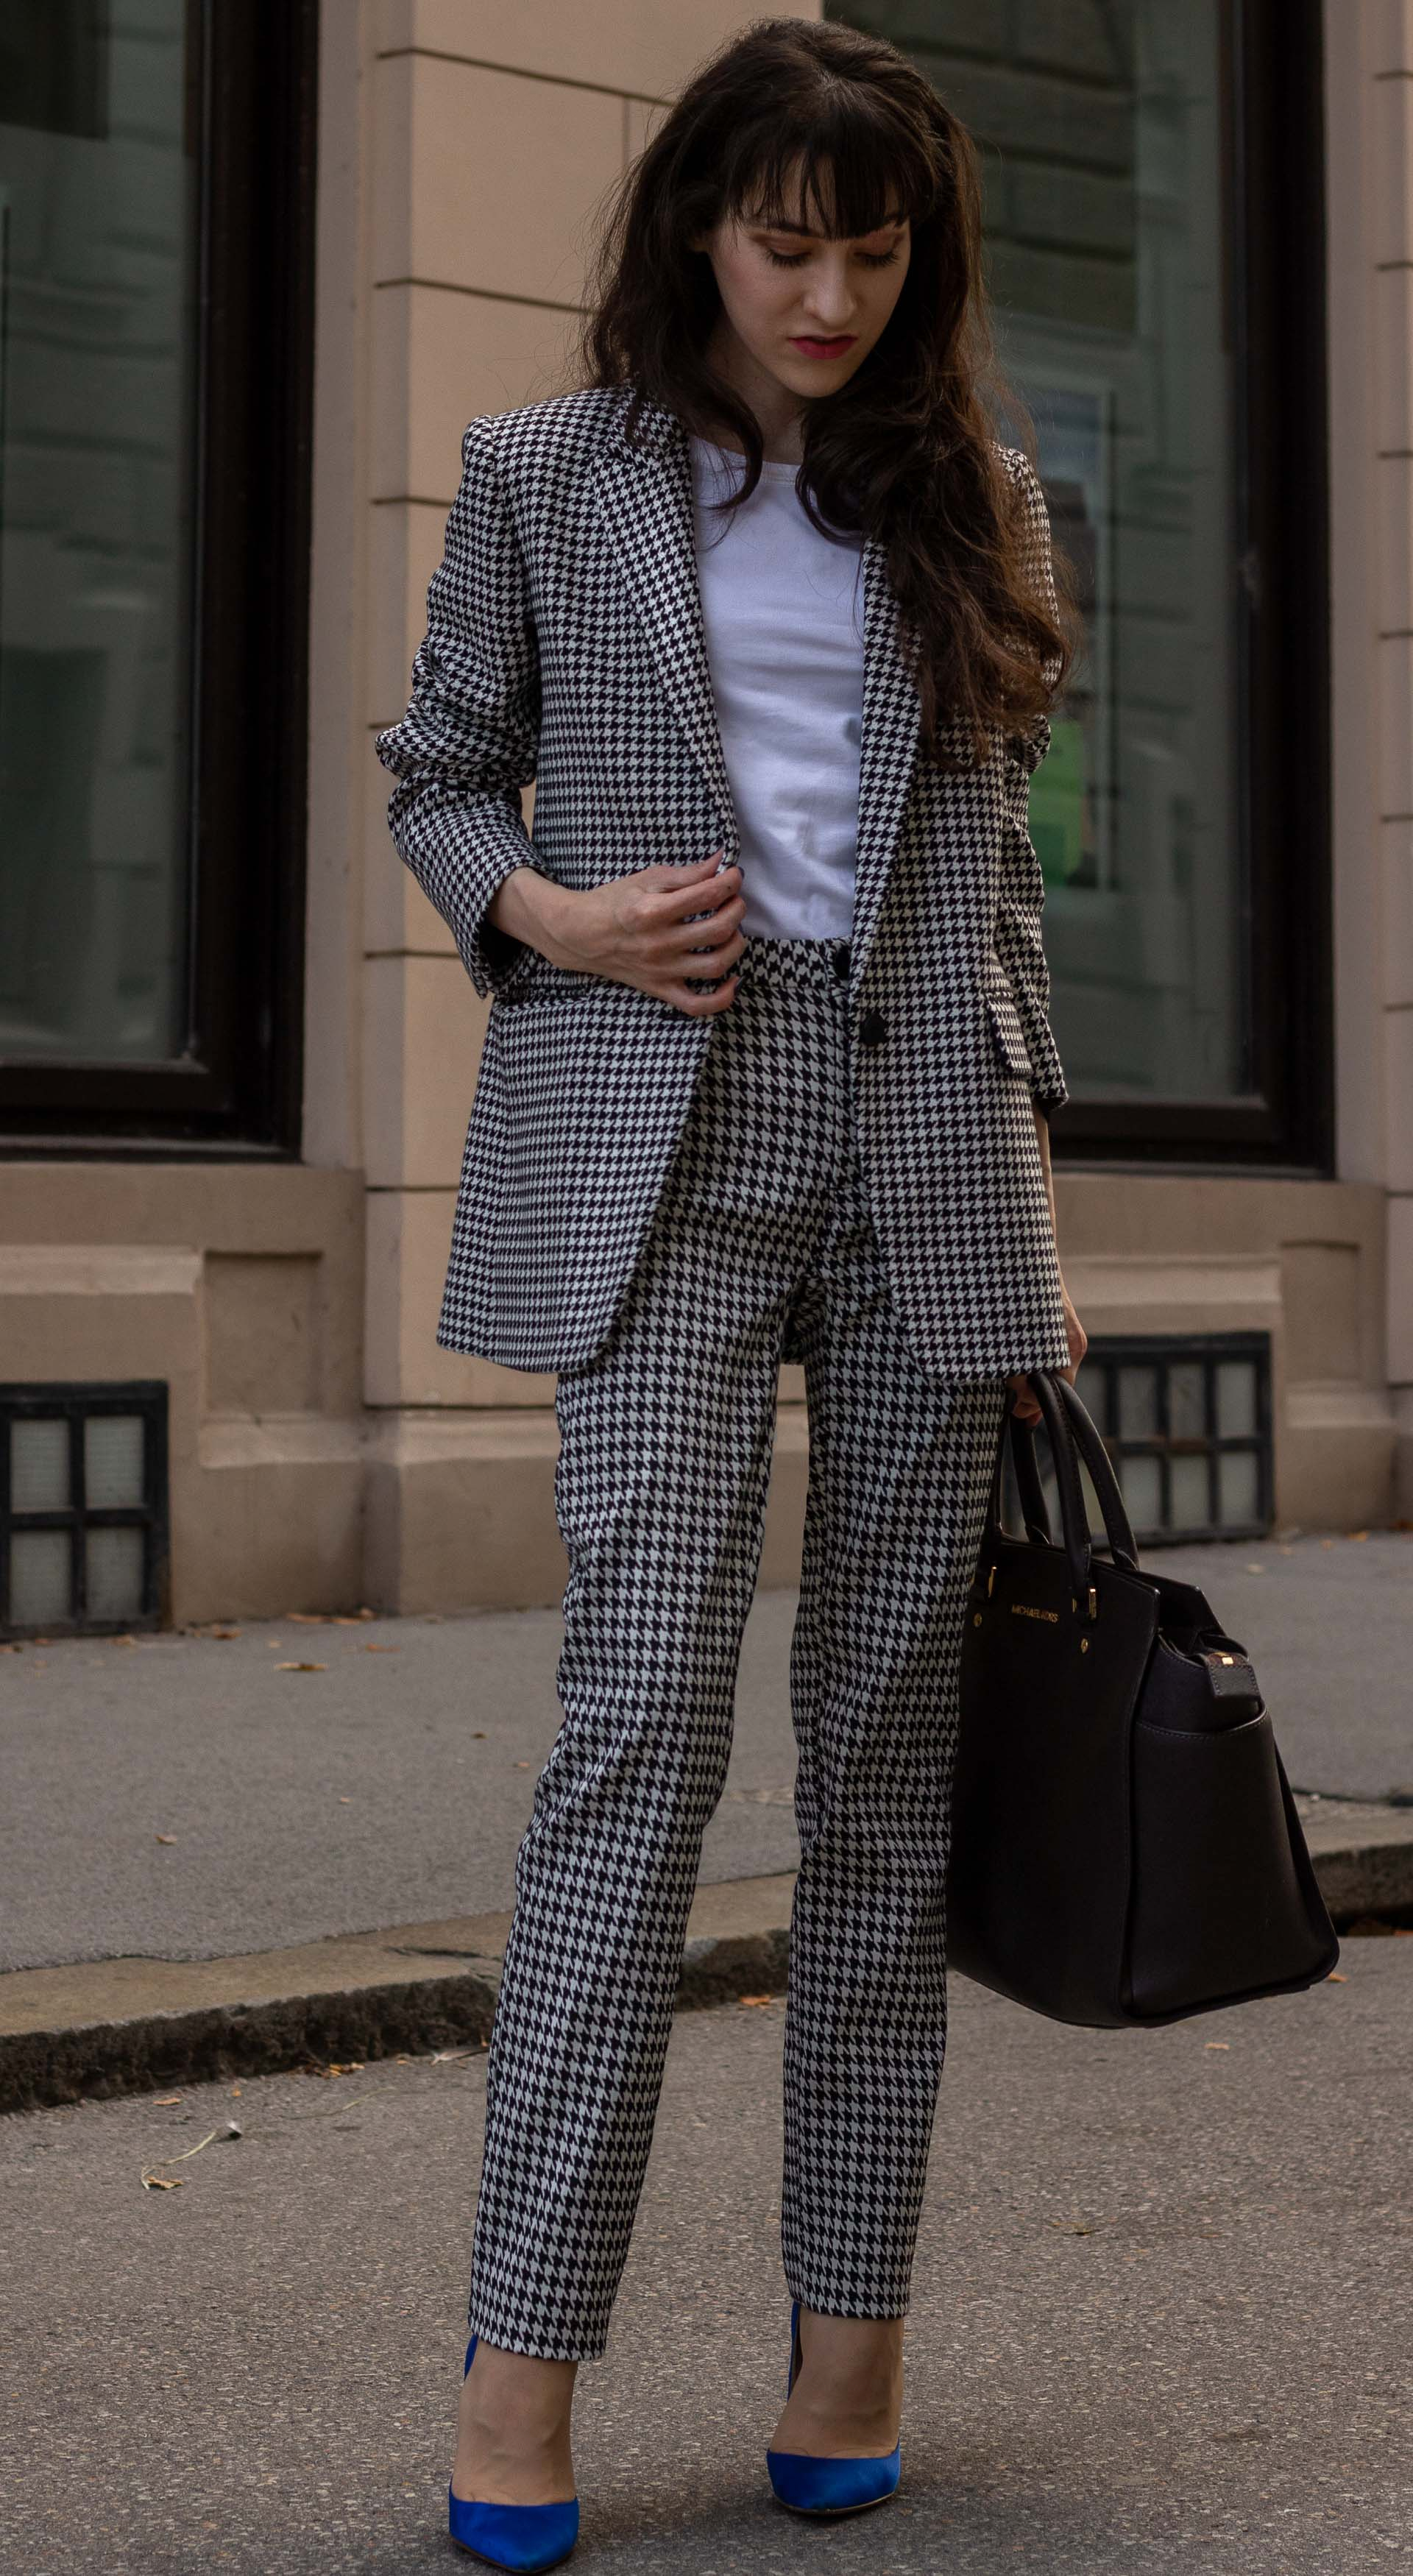 Fashion blogger Veronika Lipar of Brunette from Wall Street wearing white Sandro houndstooth tailored blazer European Culture houndstooth pants Michael Kors Selma bag blue Gianvito Rossi court shoes for office in fall